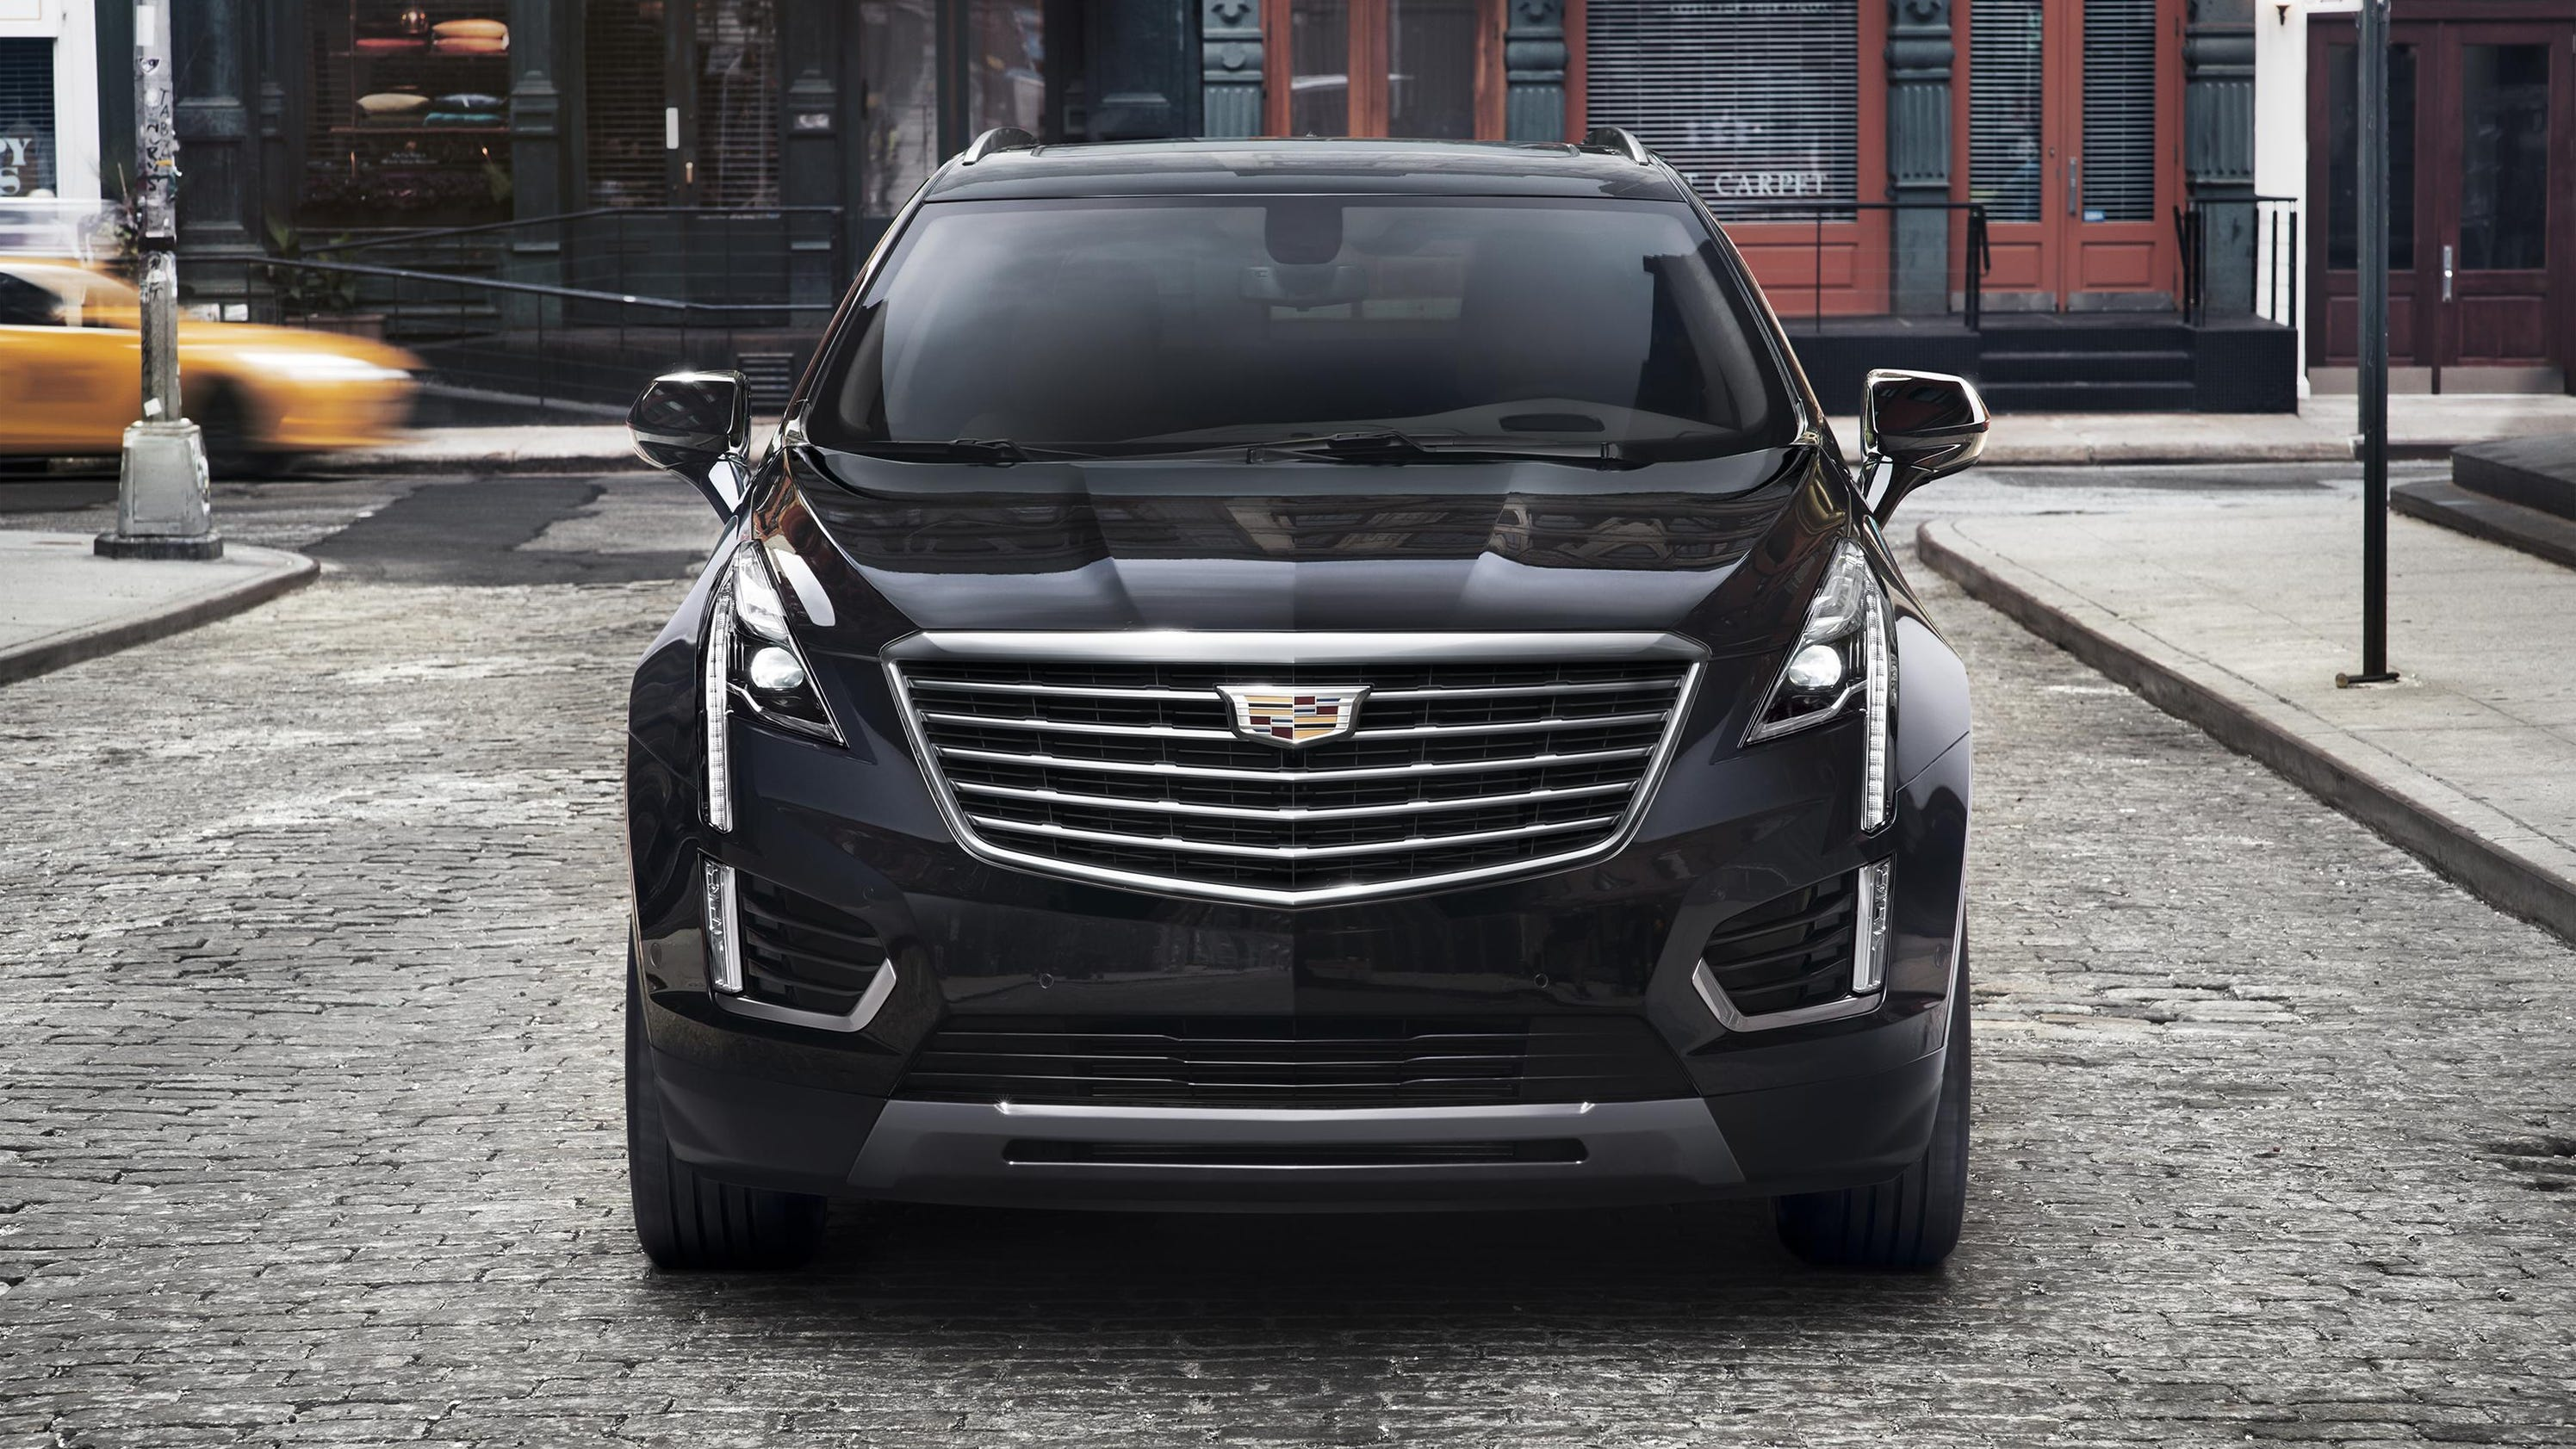 download cadillac crossover free blueprint modeling for srx